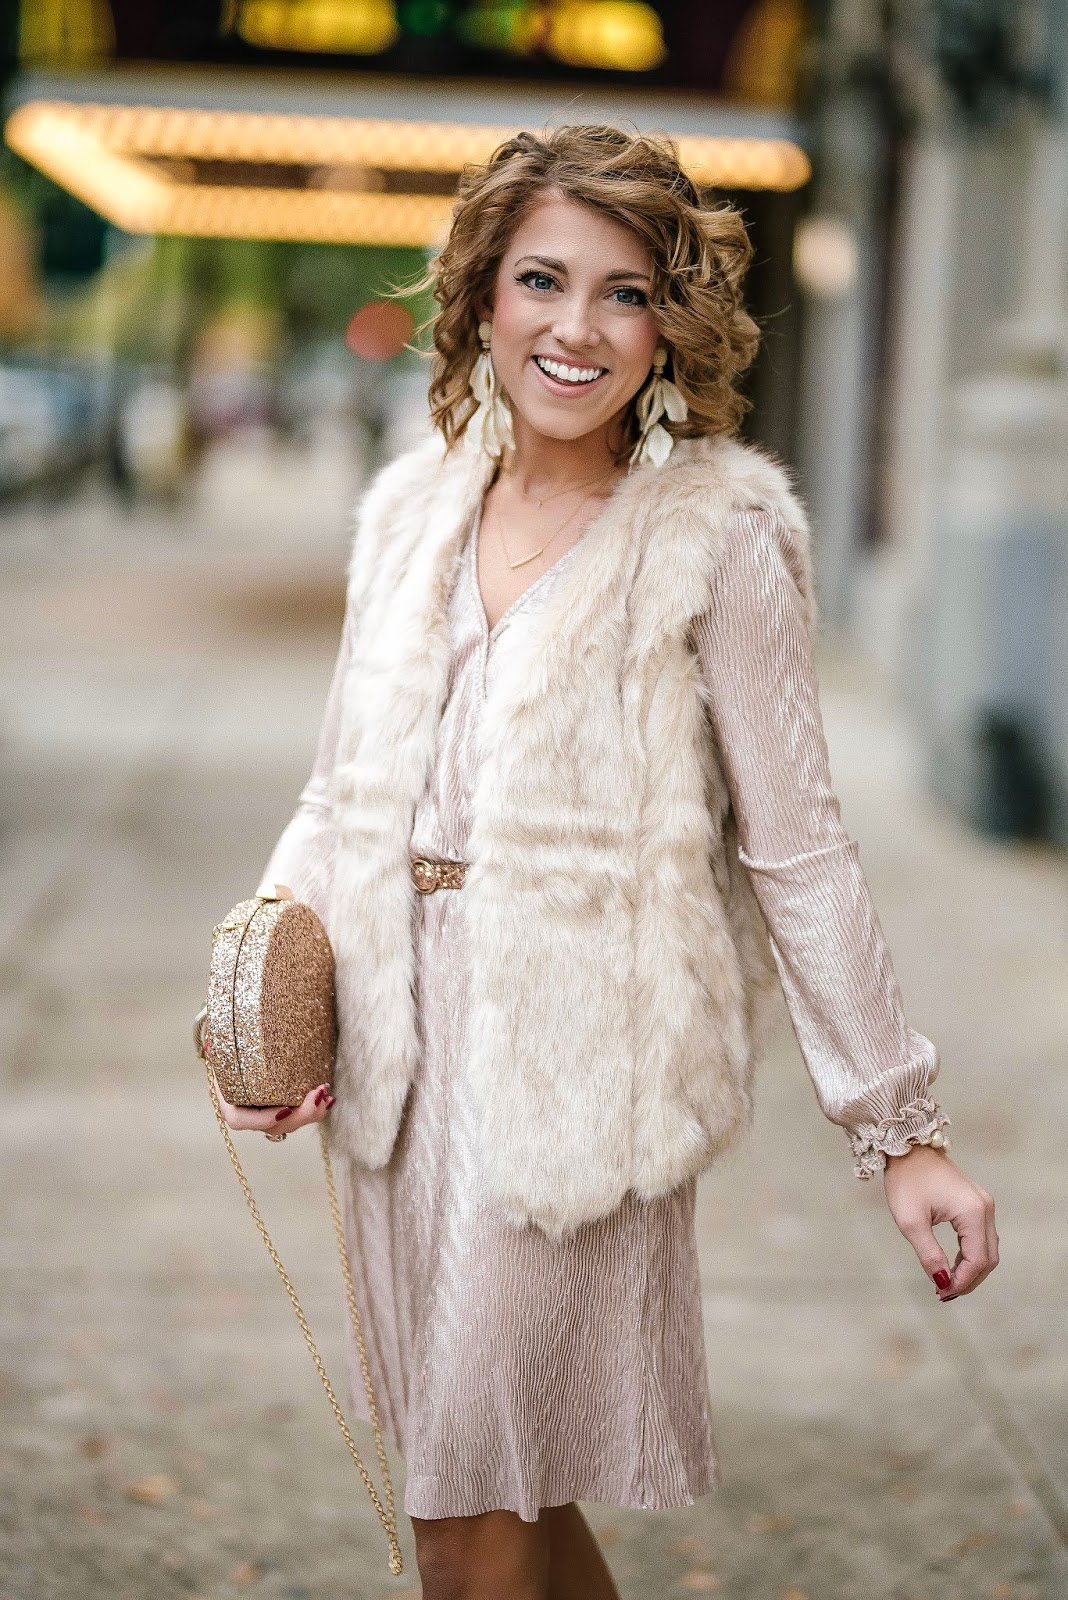 Pink Pleated Dress, Faux Fur Vest and Glitter Accessories - Something Delightful Blog